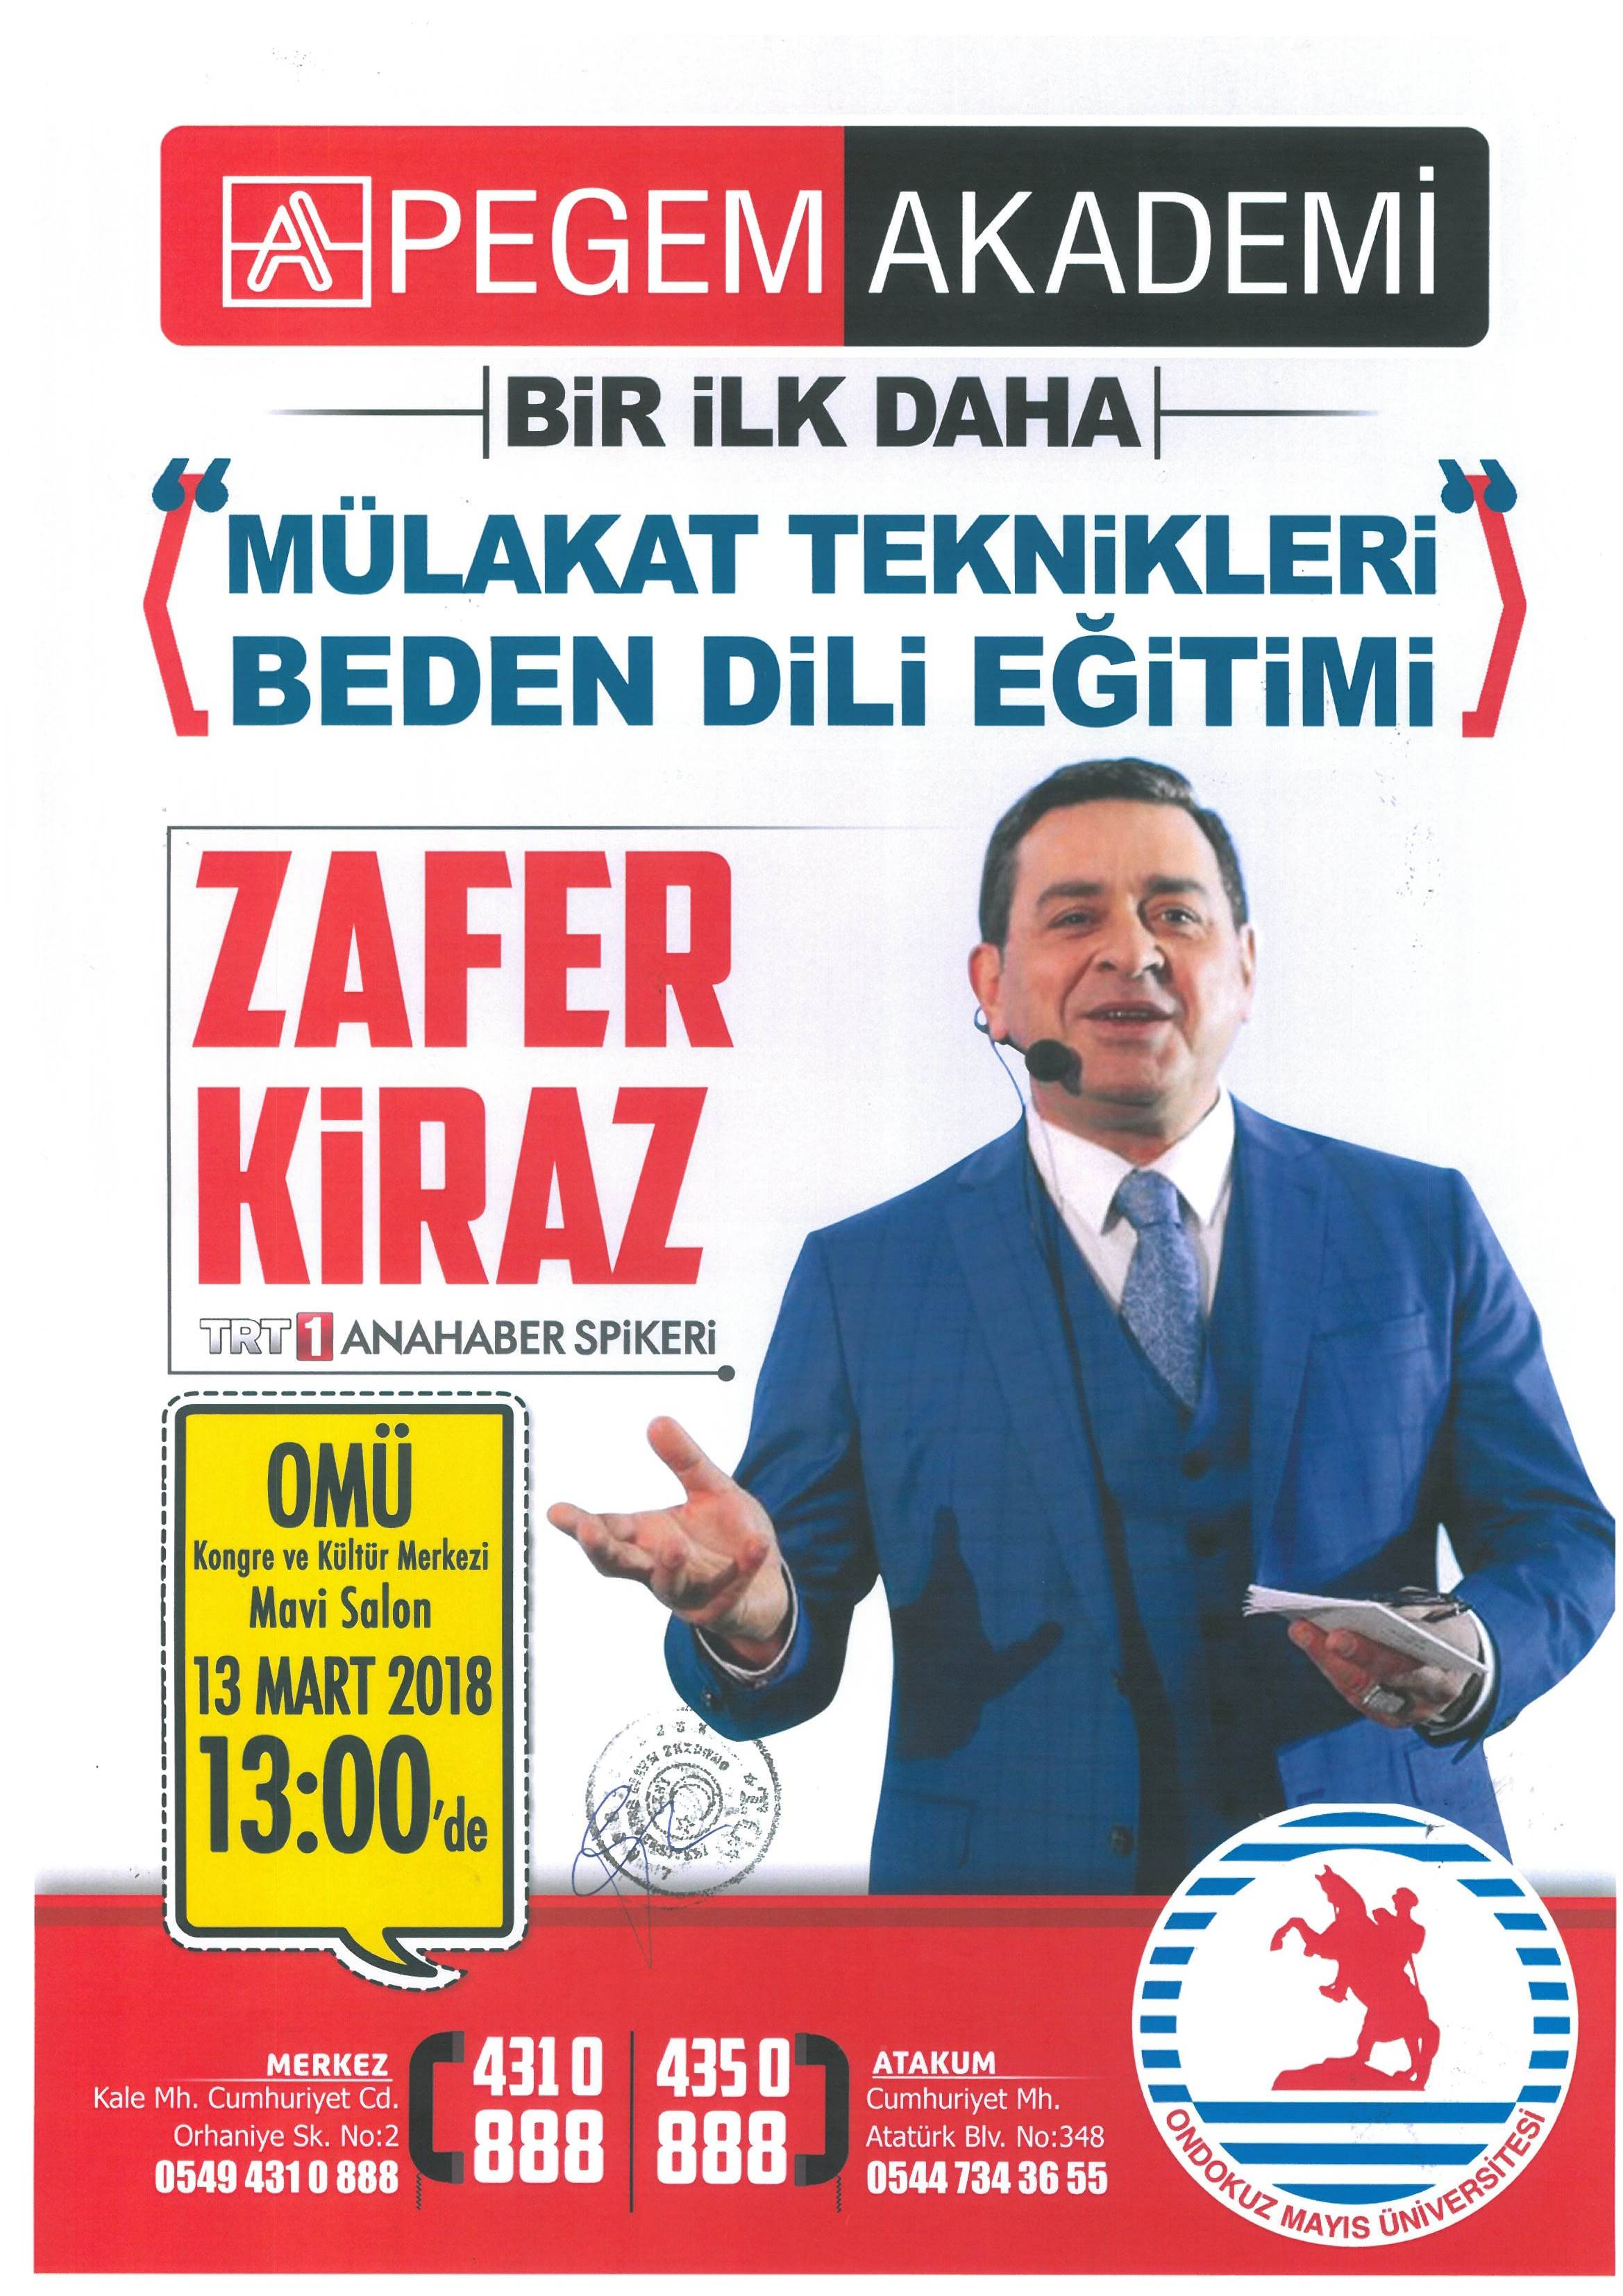 http://www.omu.edu.tr/sites/default/files/zafer_kiraz.jpg